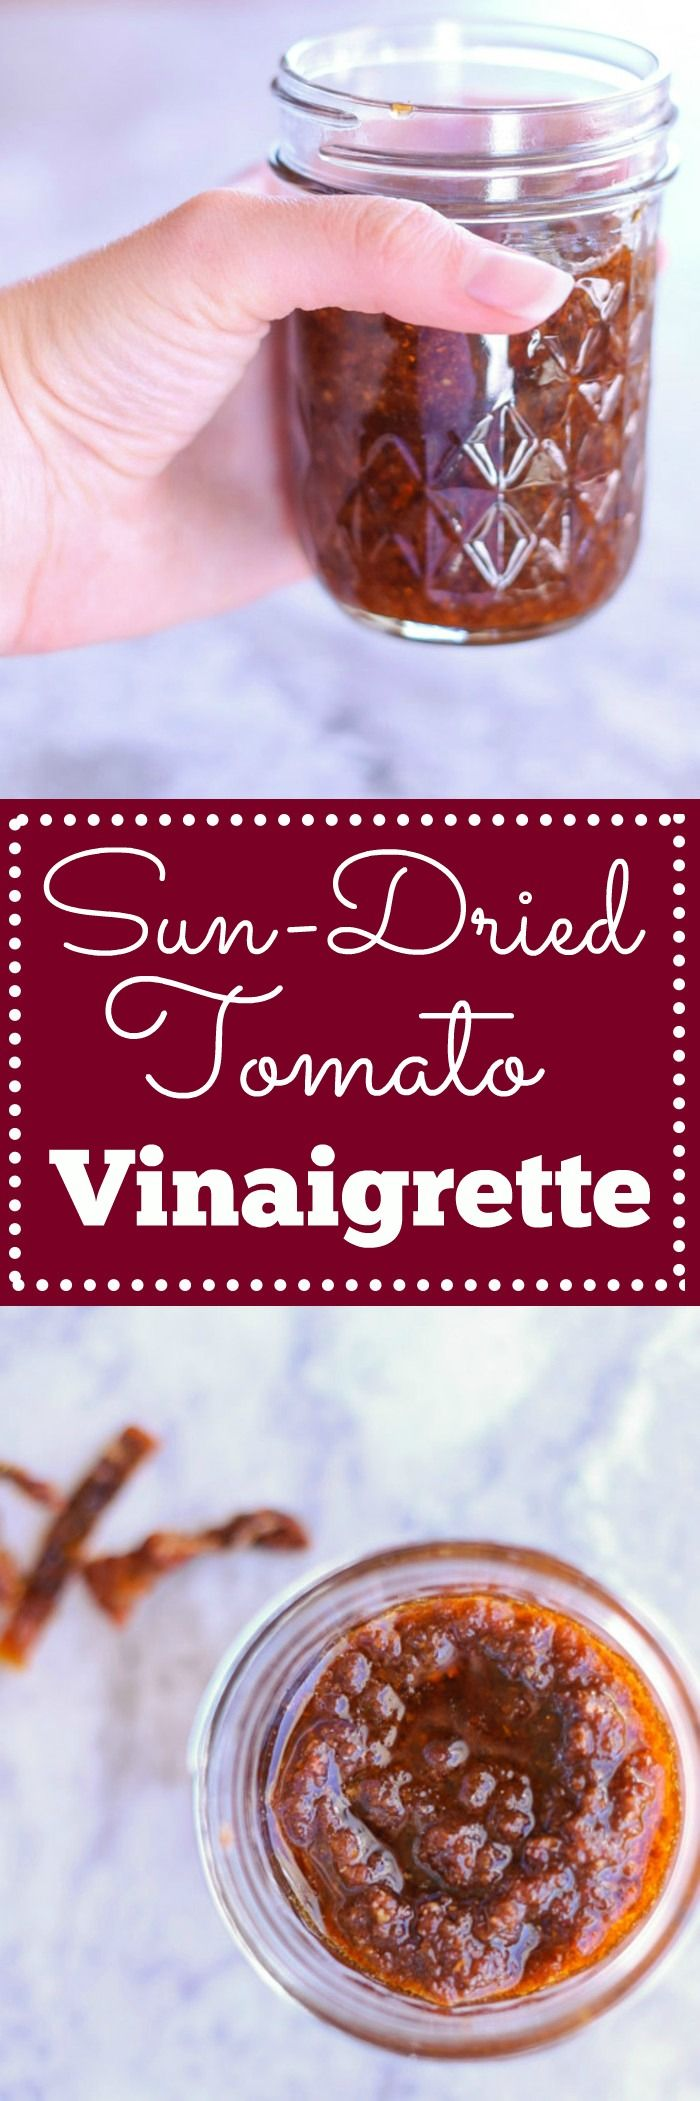 Sun Dried Tomato Vinaigrette - All you need is 5 ingredients and 5 minutes to get this delicious dressing for salad, roasted vegetables, meat or anything else you can think to put it on. Trust me, you'll want to put it on everything! | louloubiscuit.com